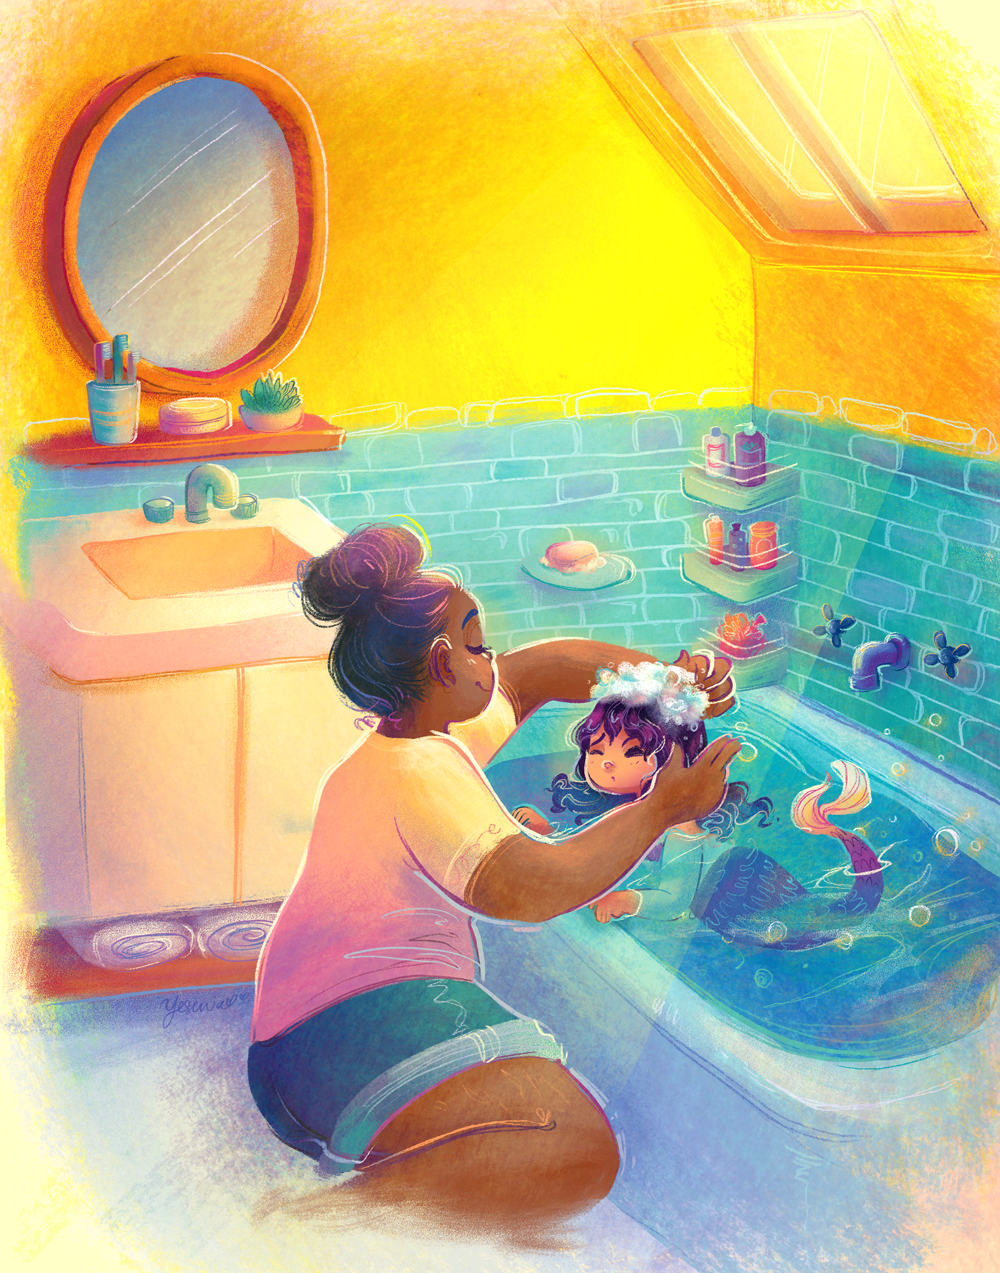 Rubadub-Mermaid-Tub.png